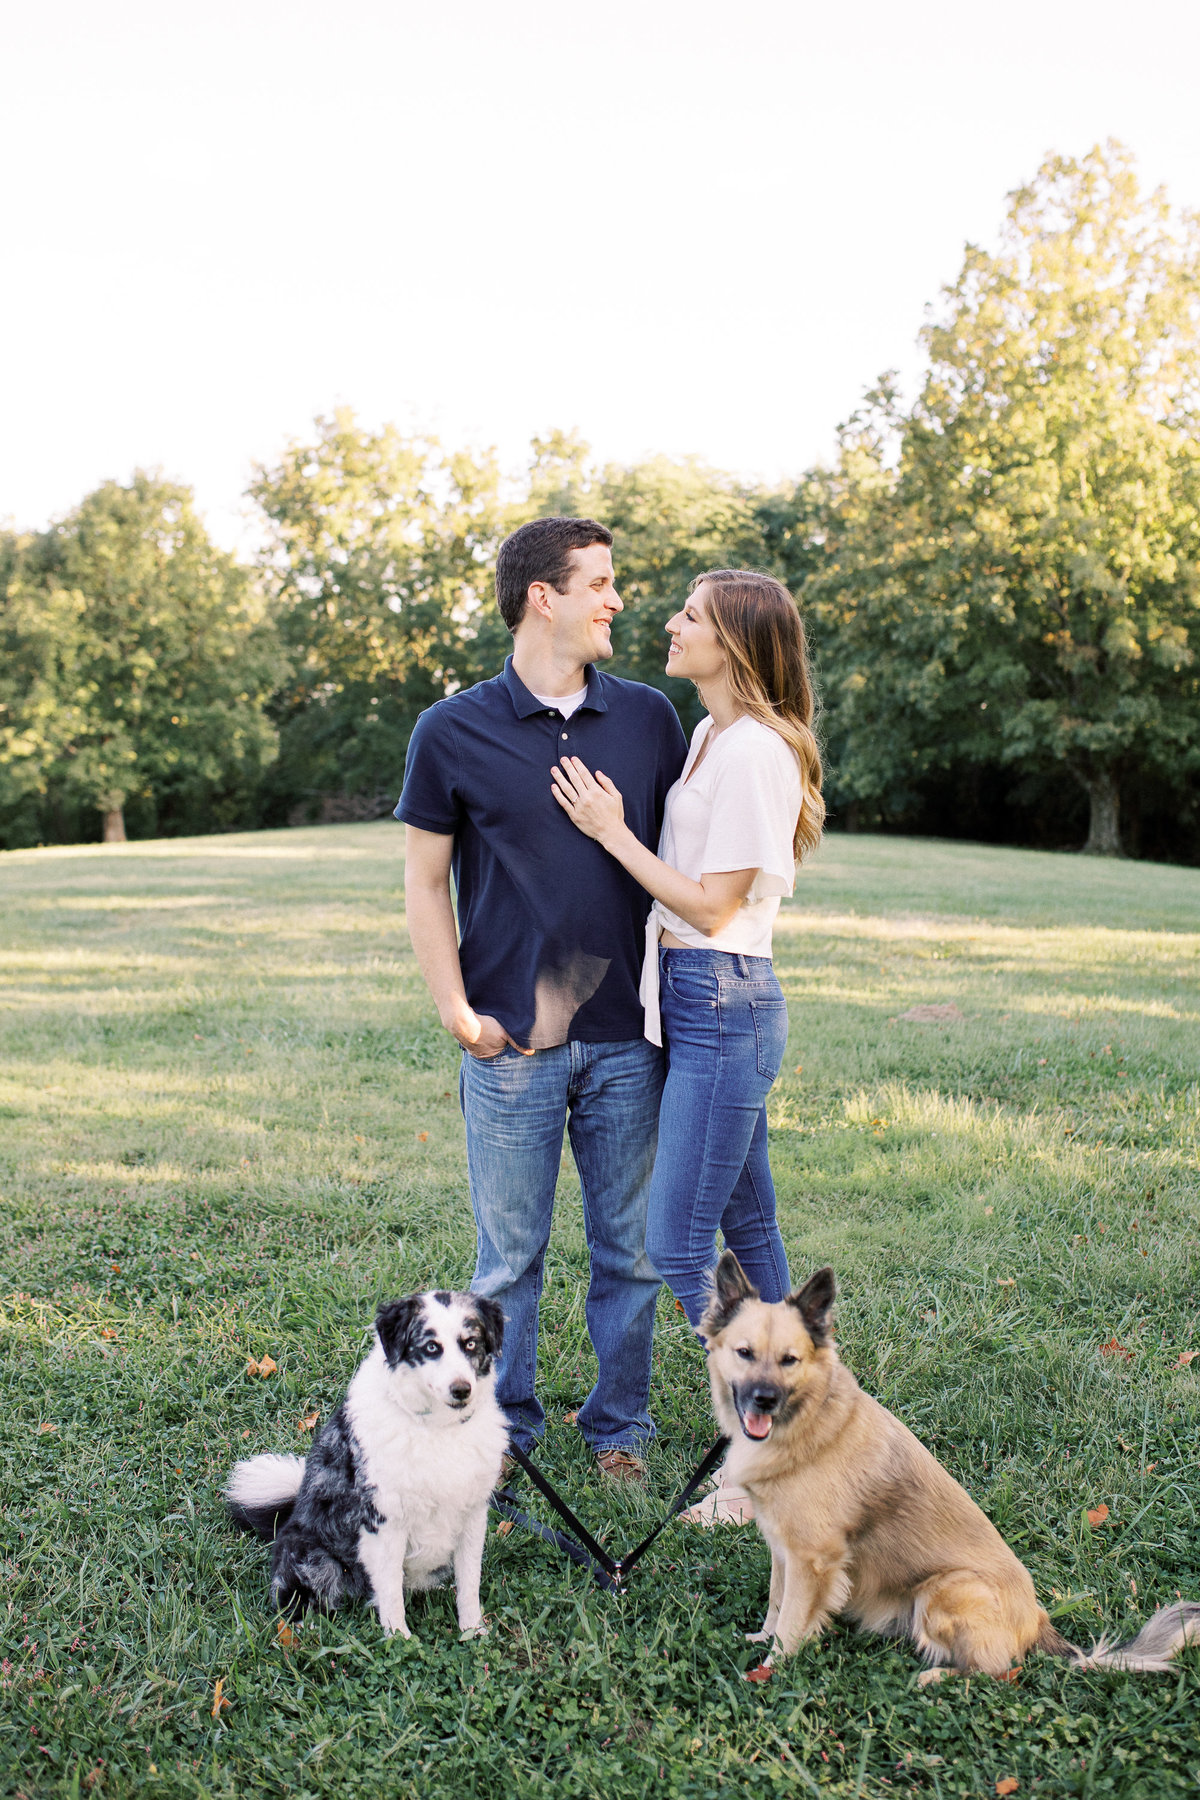 Summer engagement session where a couple stands and looks towards each other in a field as their dogs sit beside them.